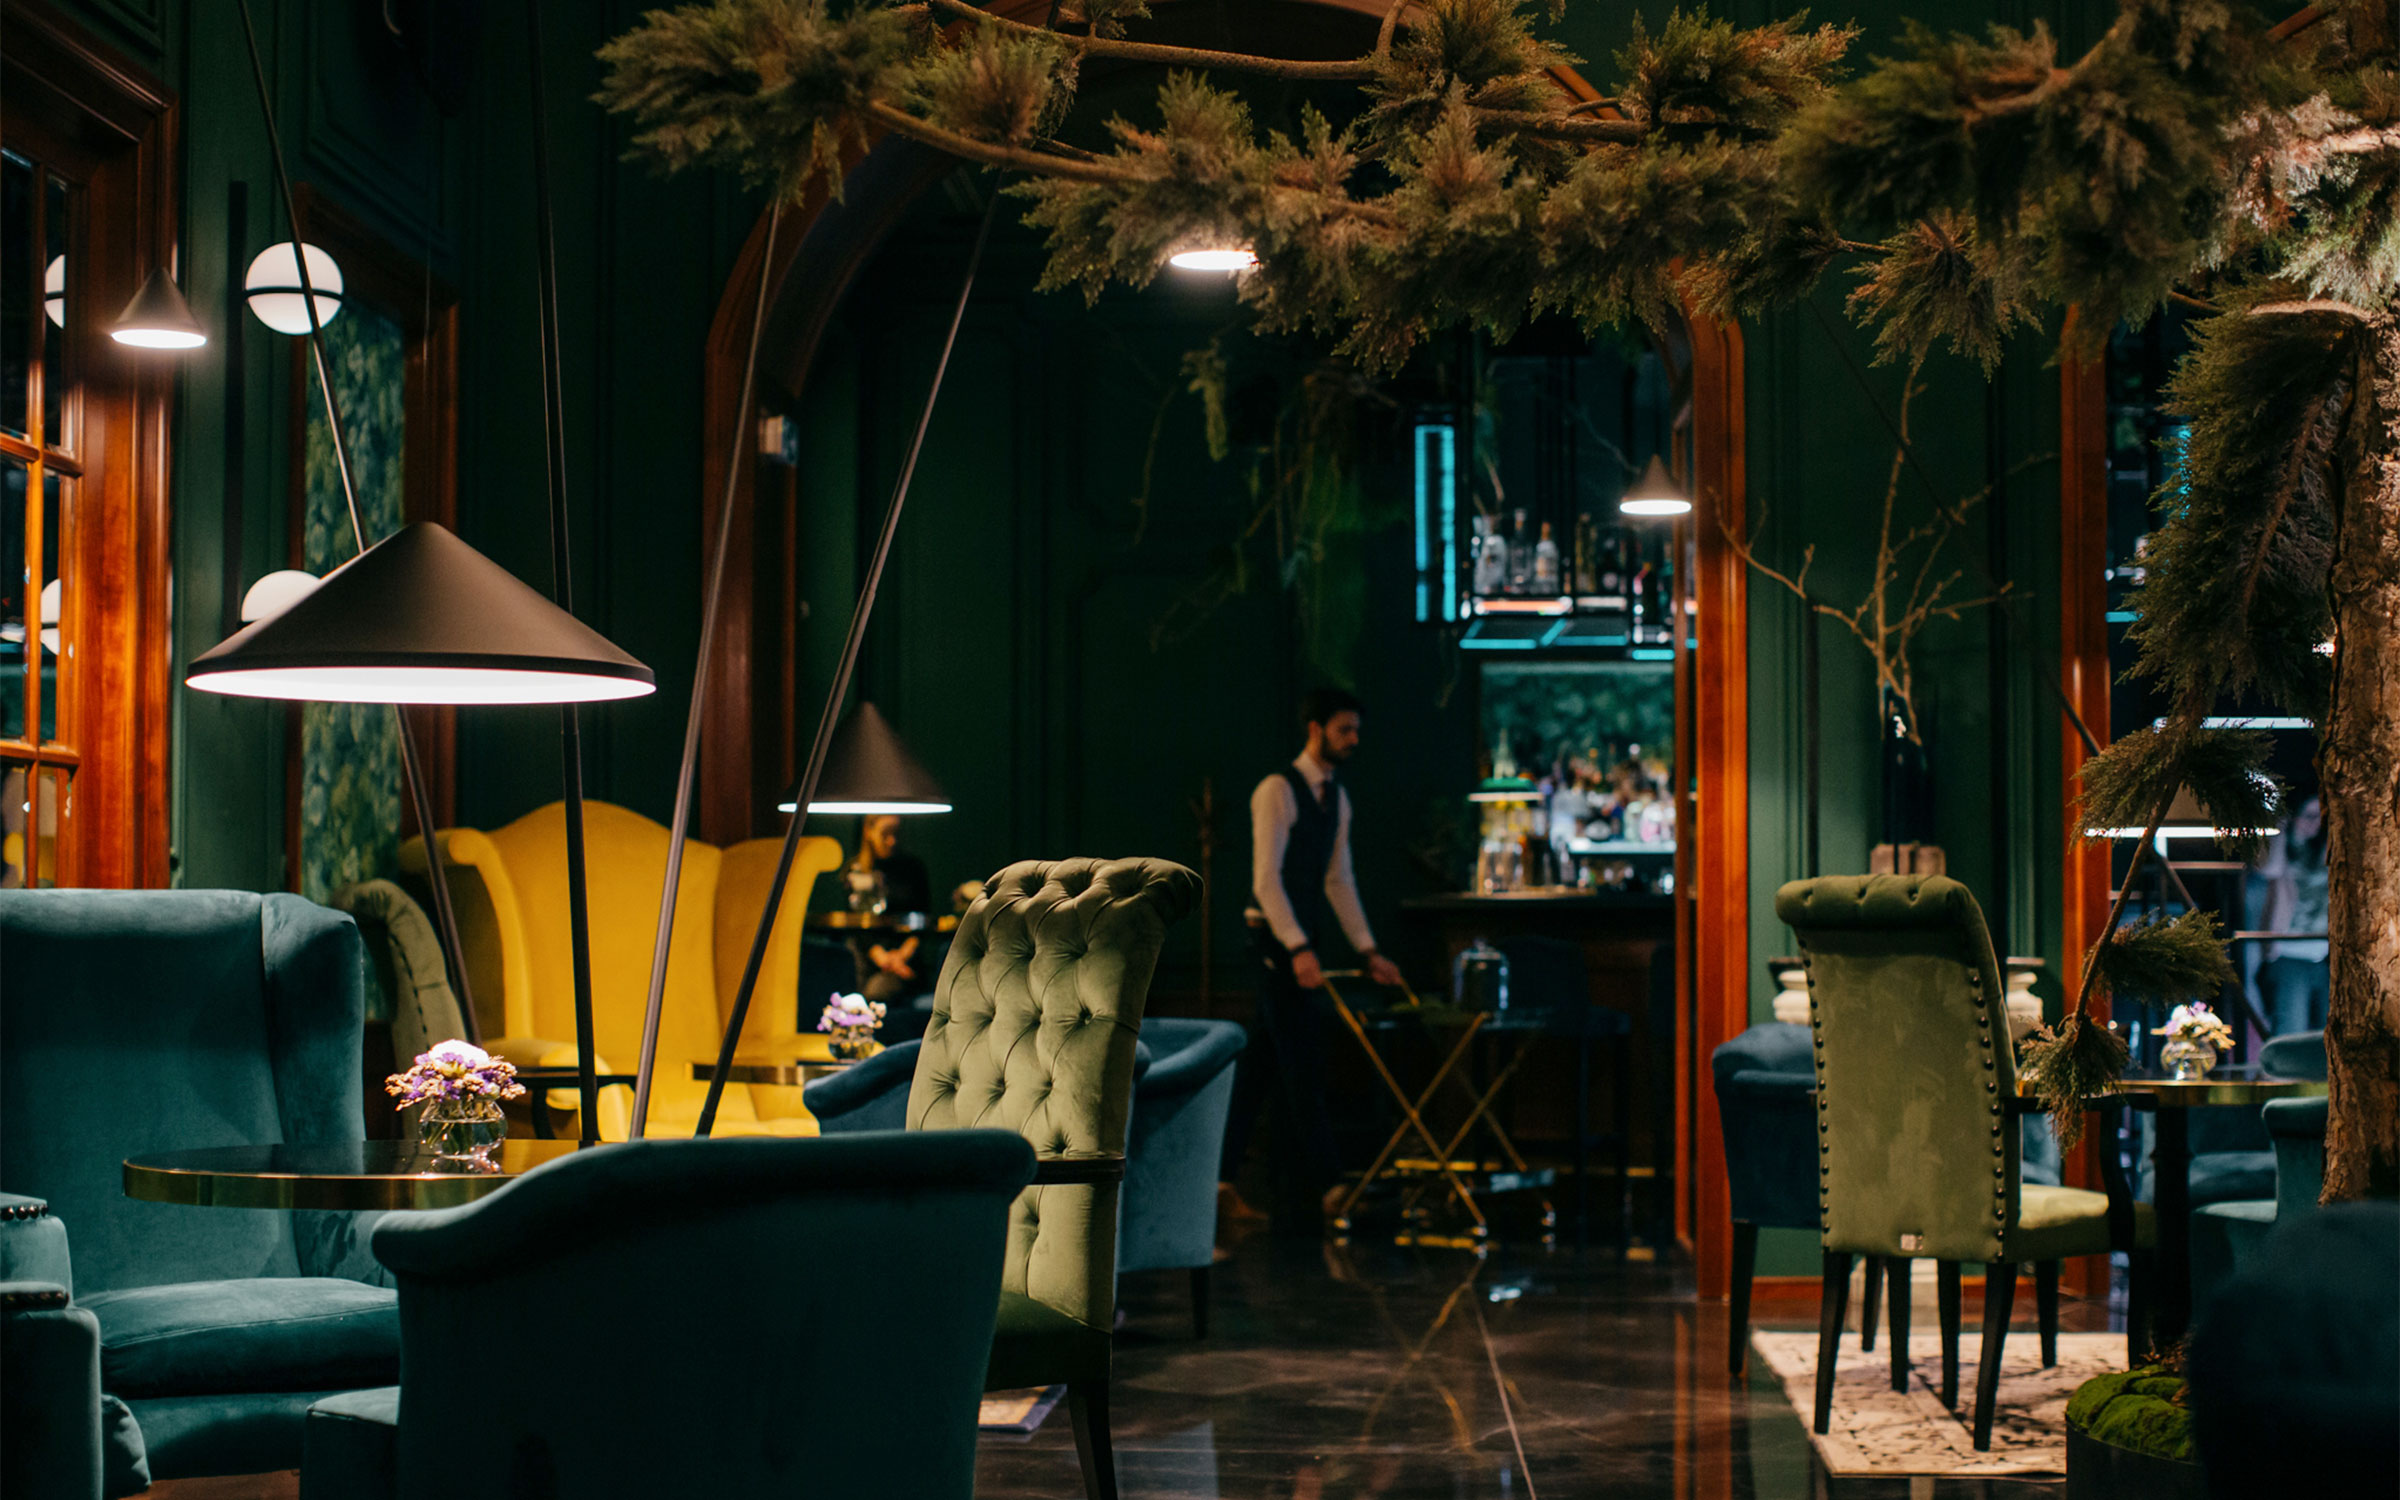 Vibia The Edit - North - Vibia Illuminates a Timeless Bratislavian Cocktail Bar